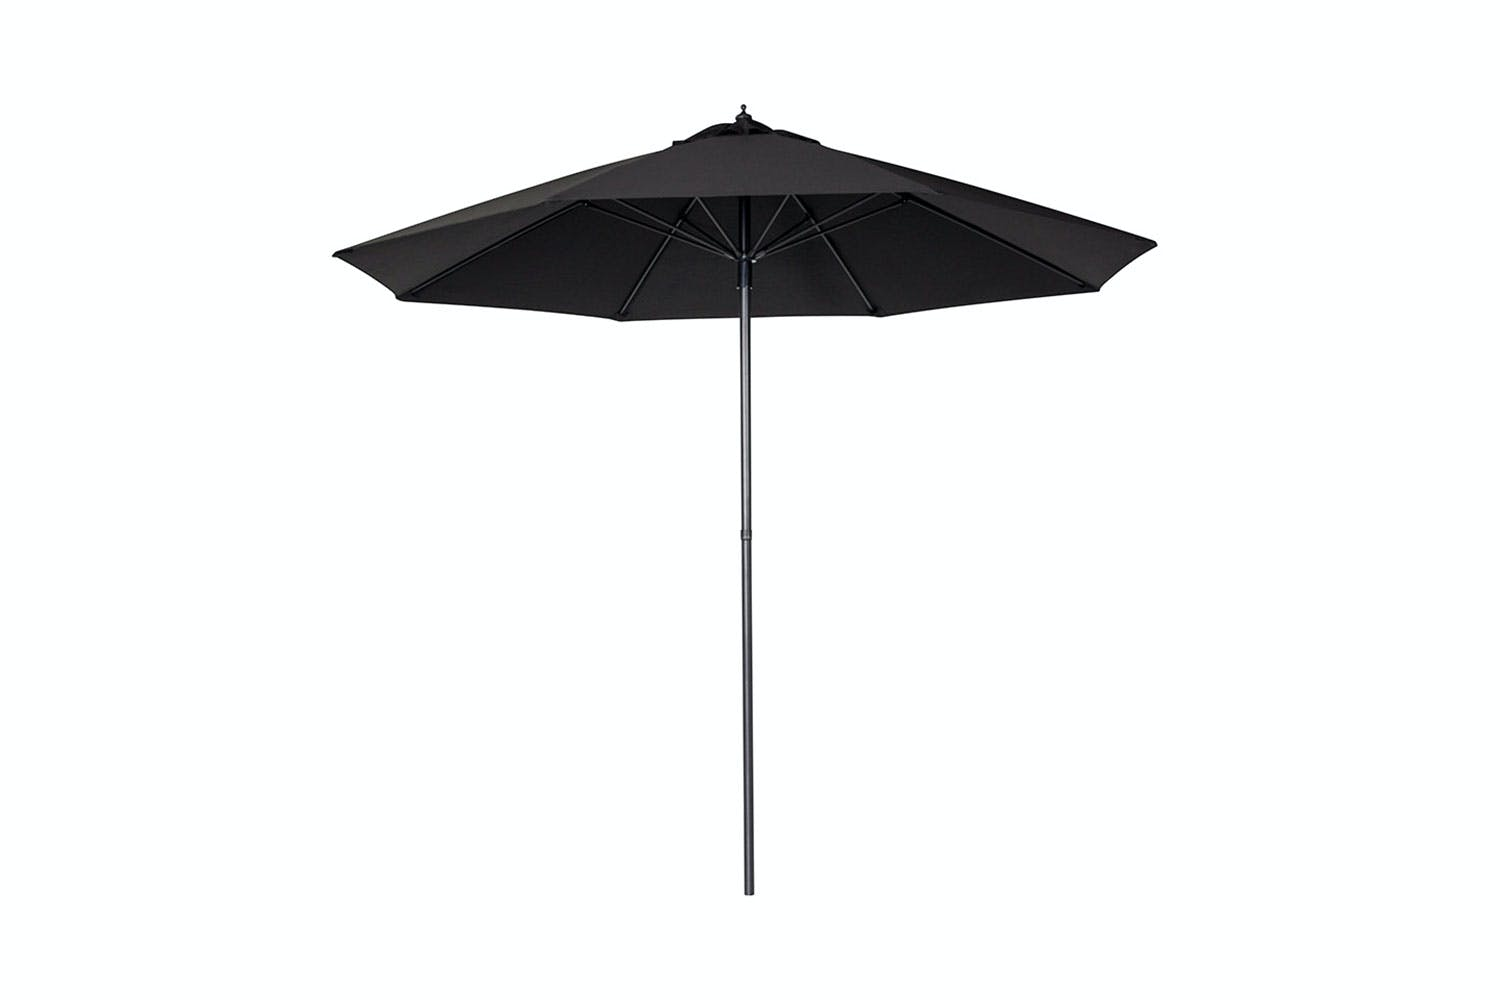 Chicago 2.7M Outdoor Umbrella by Peros - Reflex Blue